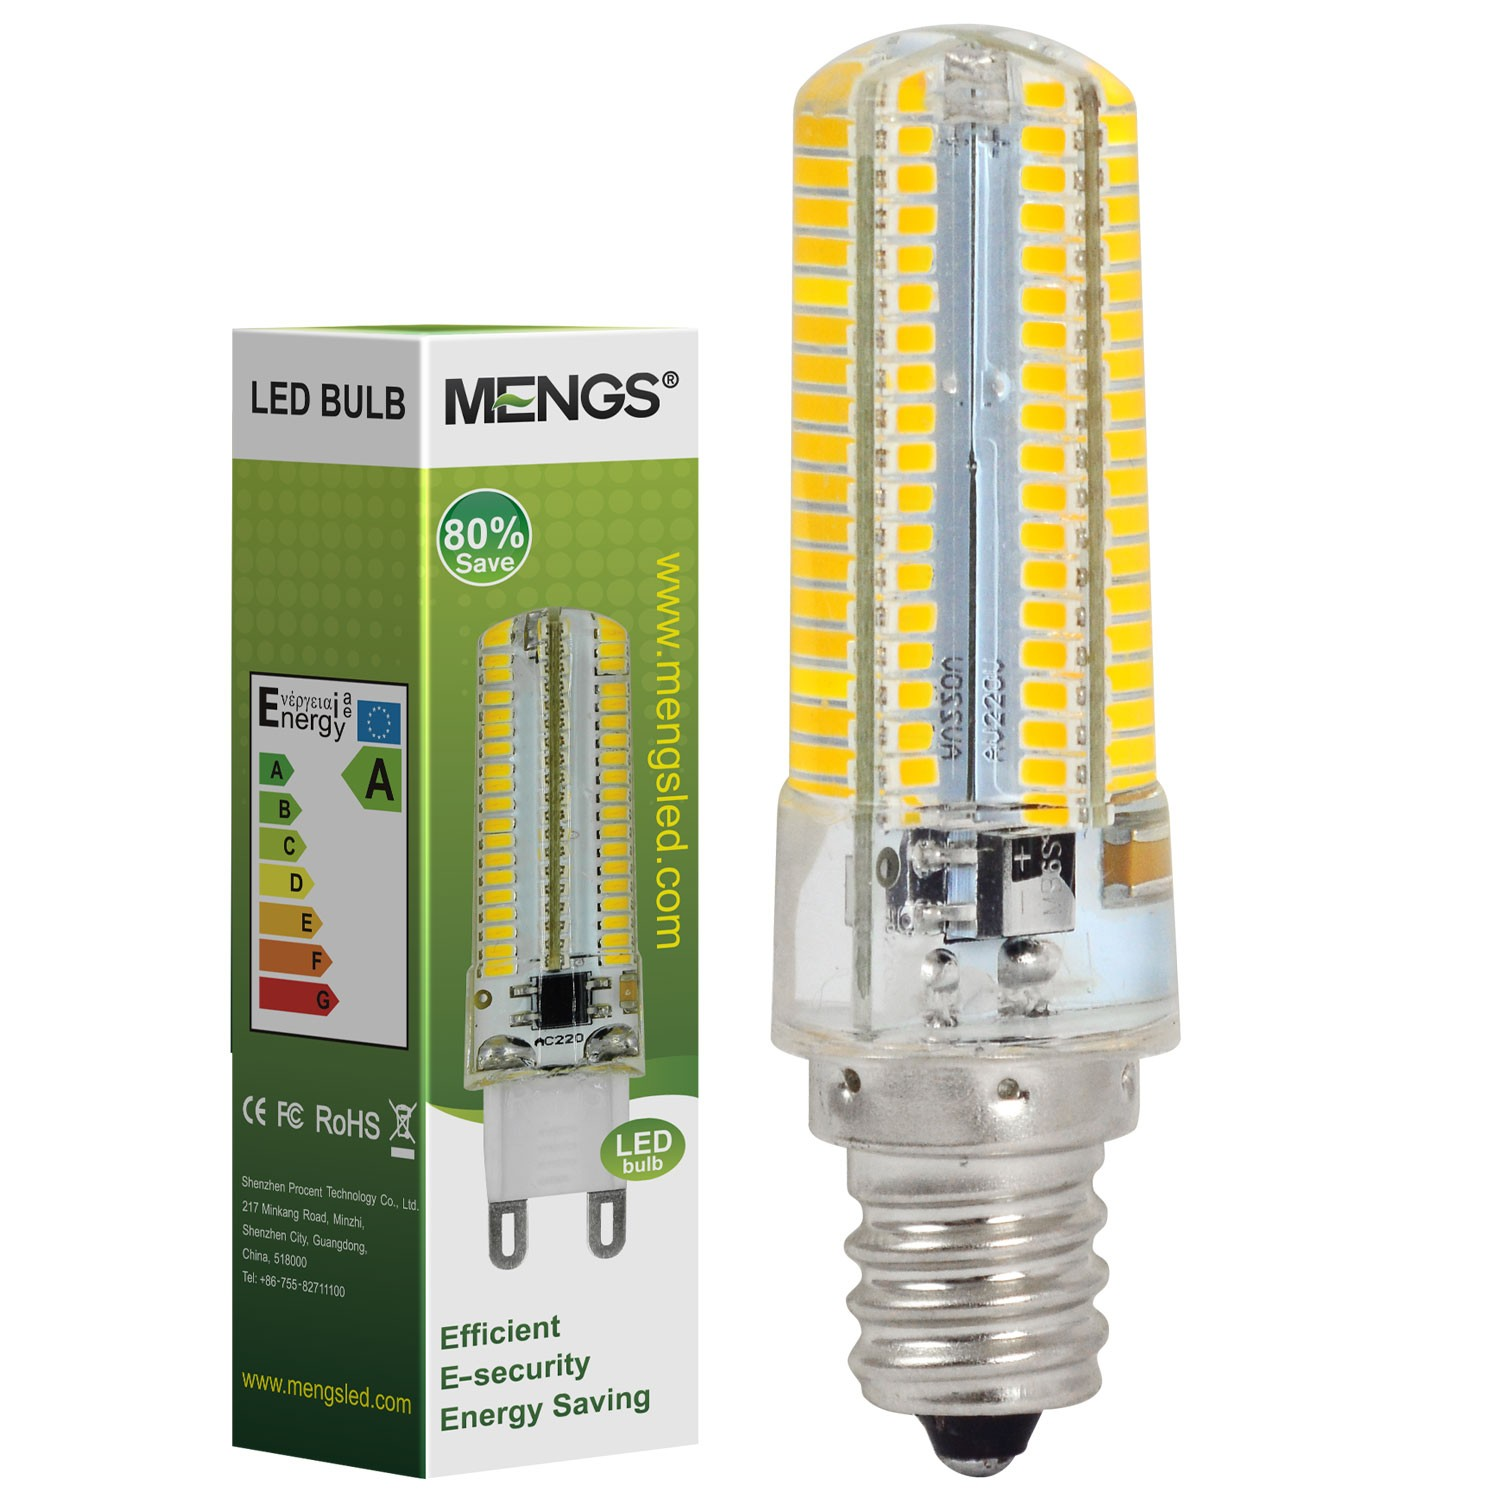 Mengsled Mengs E12 7w Led Light 152x 3014 Smd Led Bulb Lamp In Warm White Cool White Energy